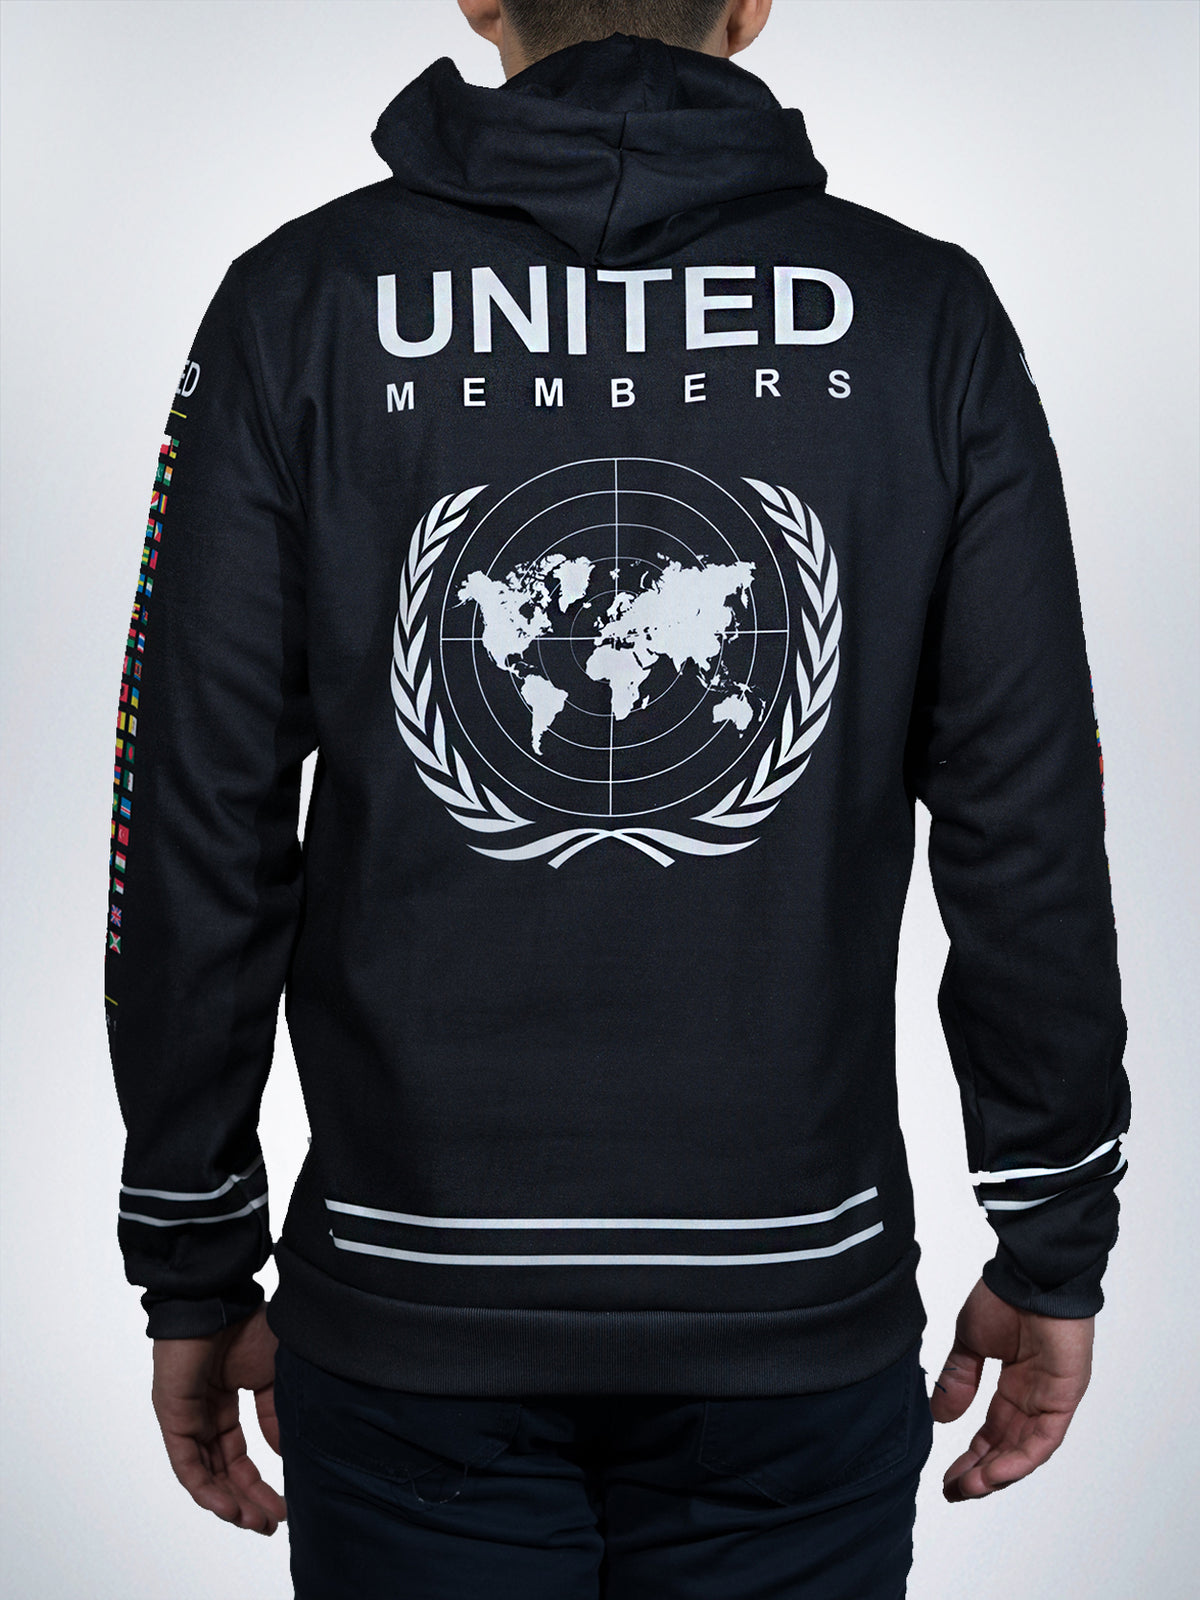 United Xclusive hoodies pullover sweater retro nations flags world leader